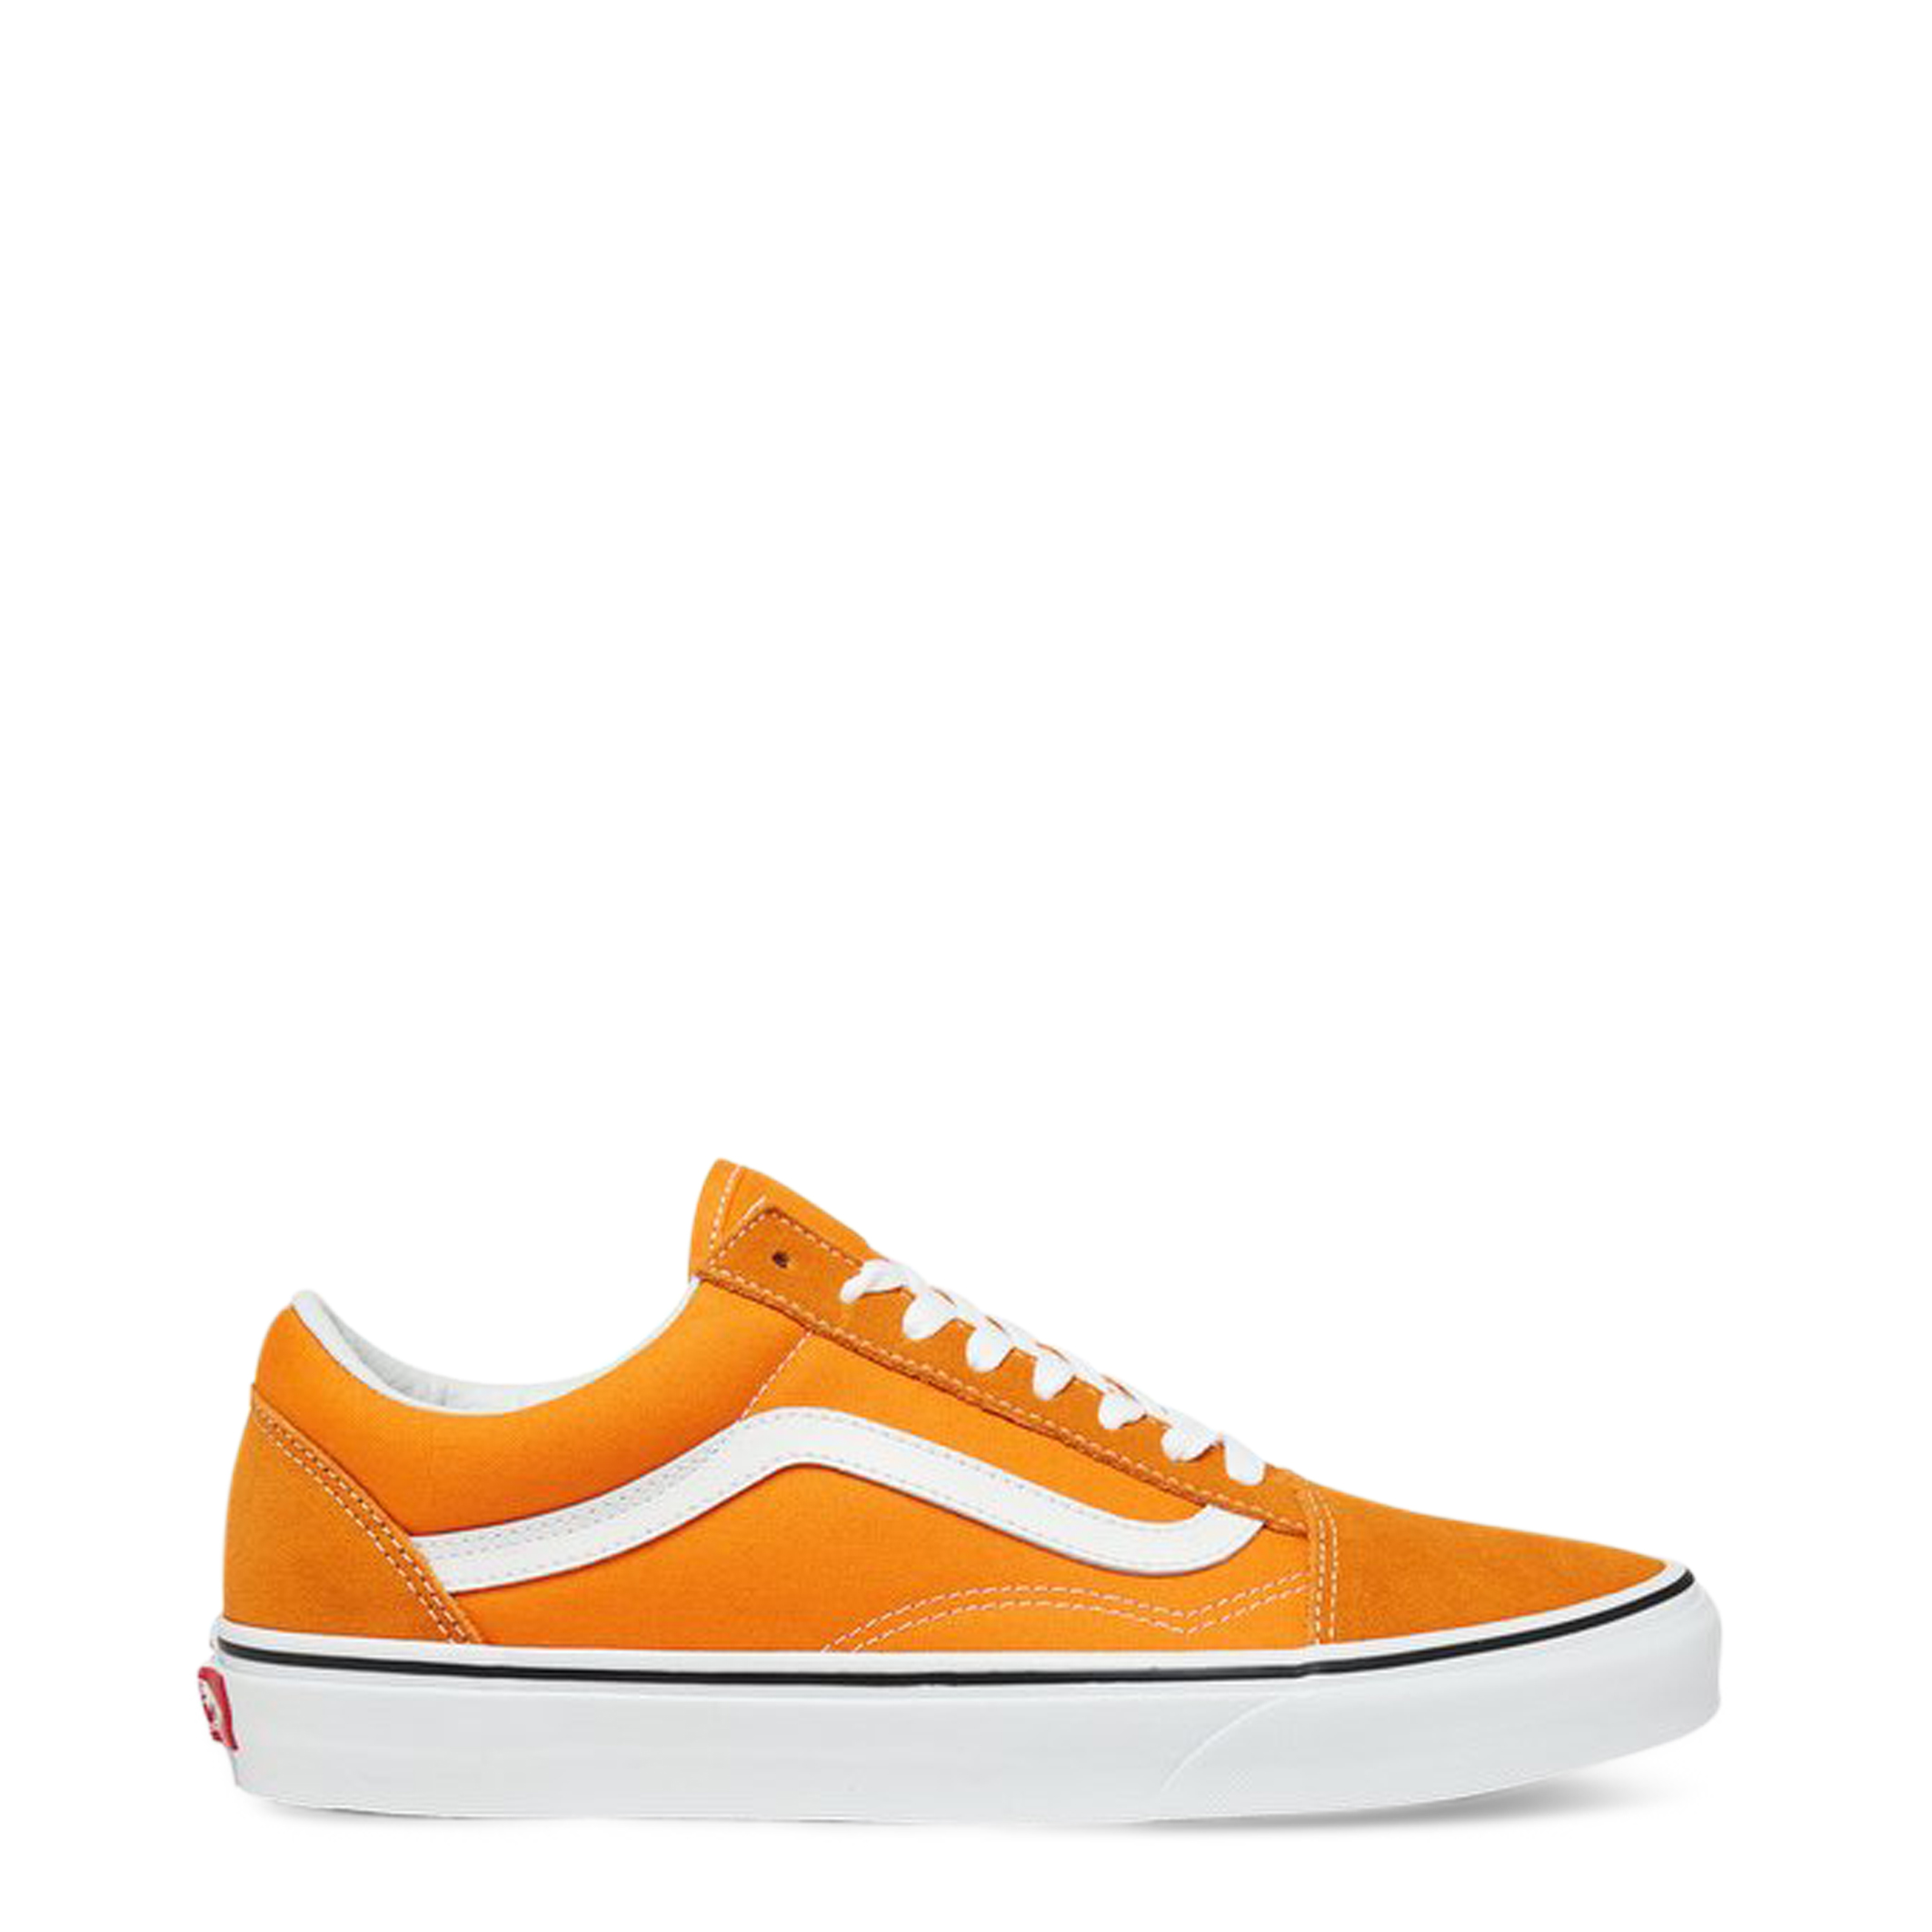 Vans OLD SKOOL O'MYCLOTHES